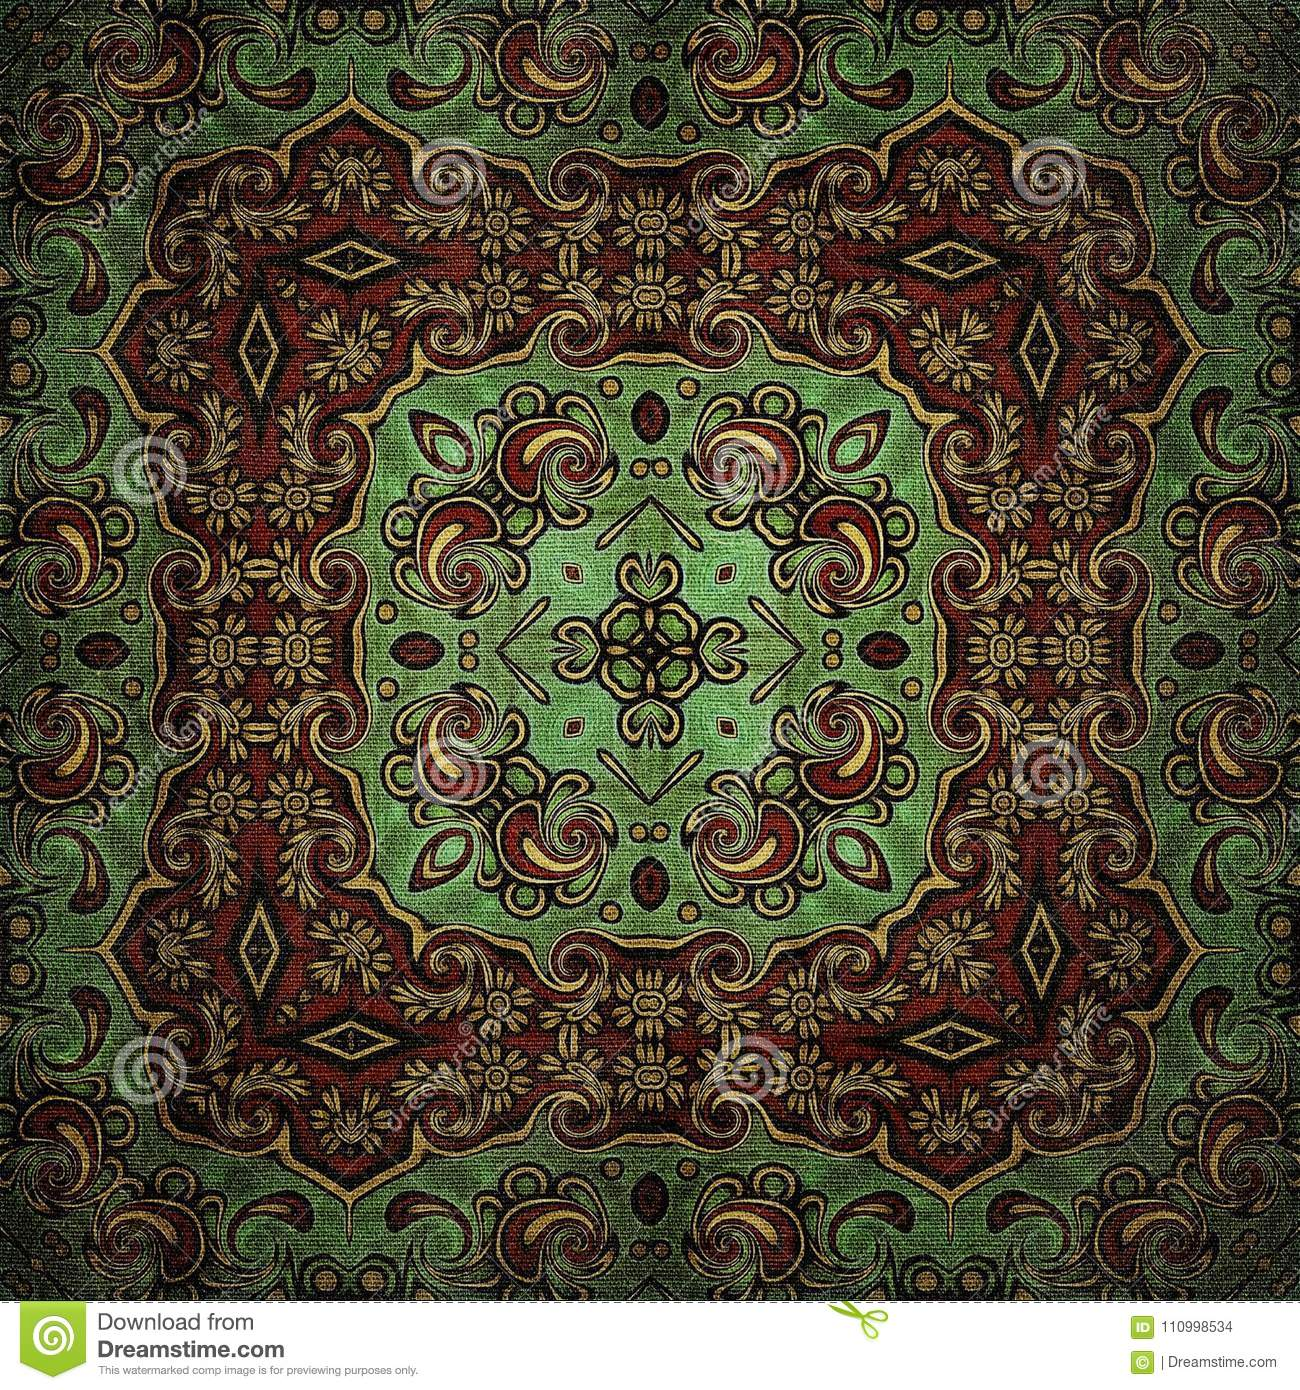 Seamless raster pattern in oriental style Flower psychedelic mosaic Pattern for wallpaper, backgrounds, decor for tapestries, carp